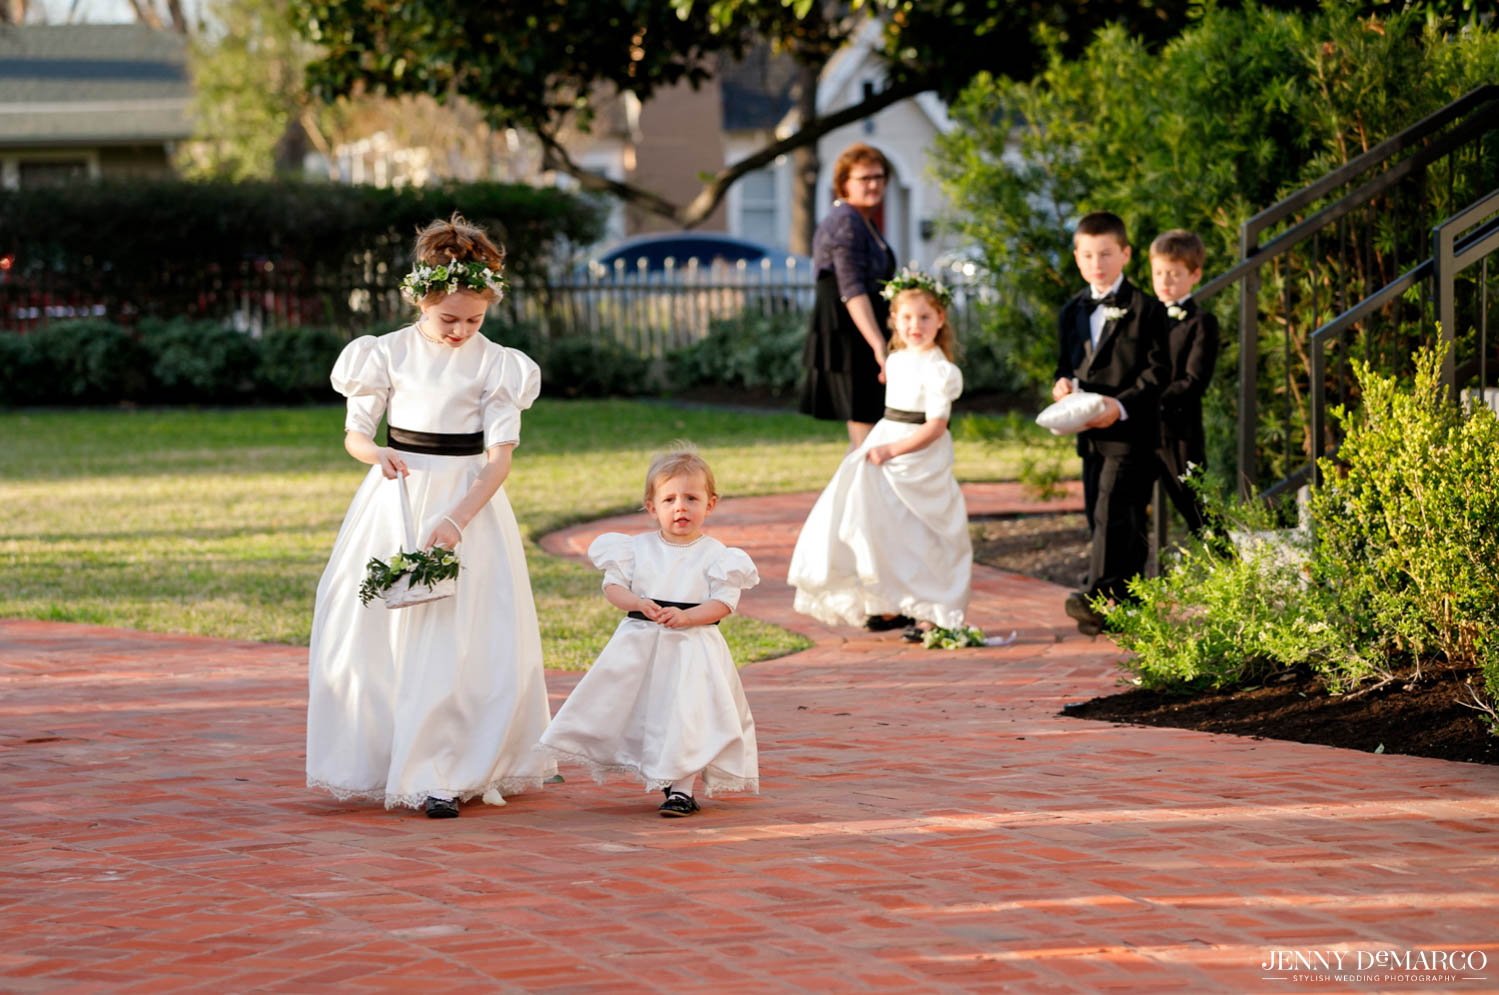 flower girls walking into the ceremony and dropping greenery